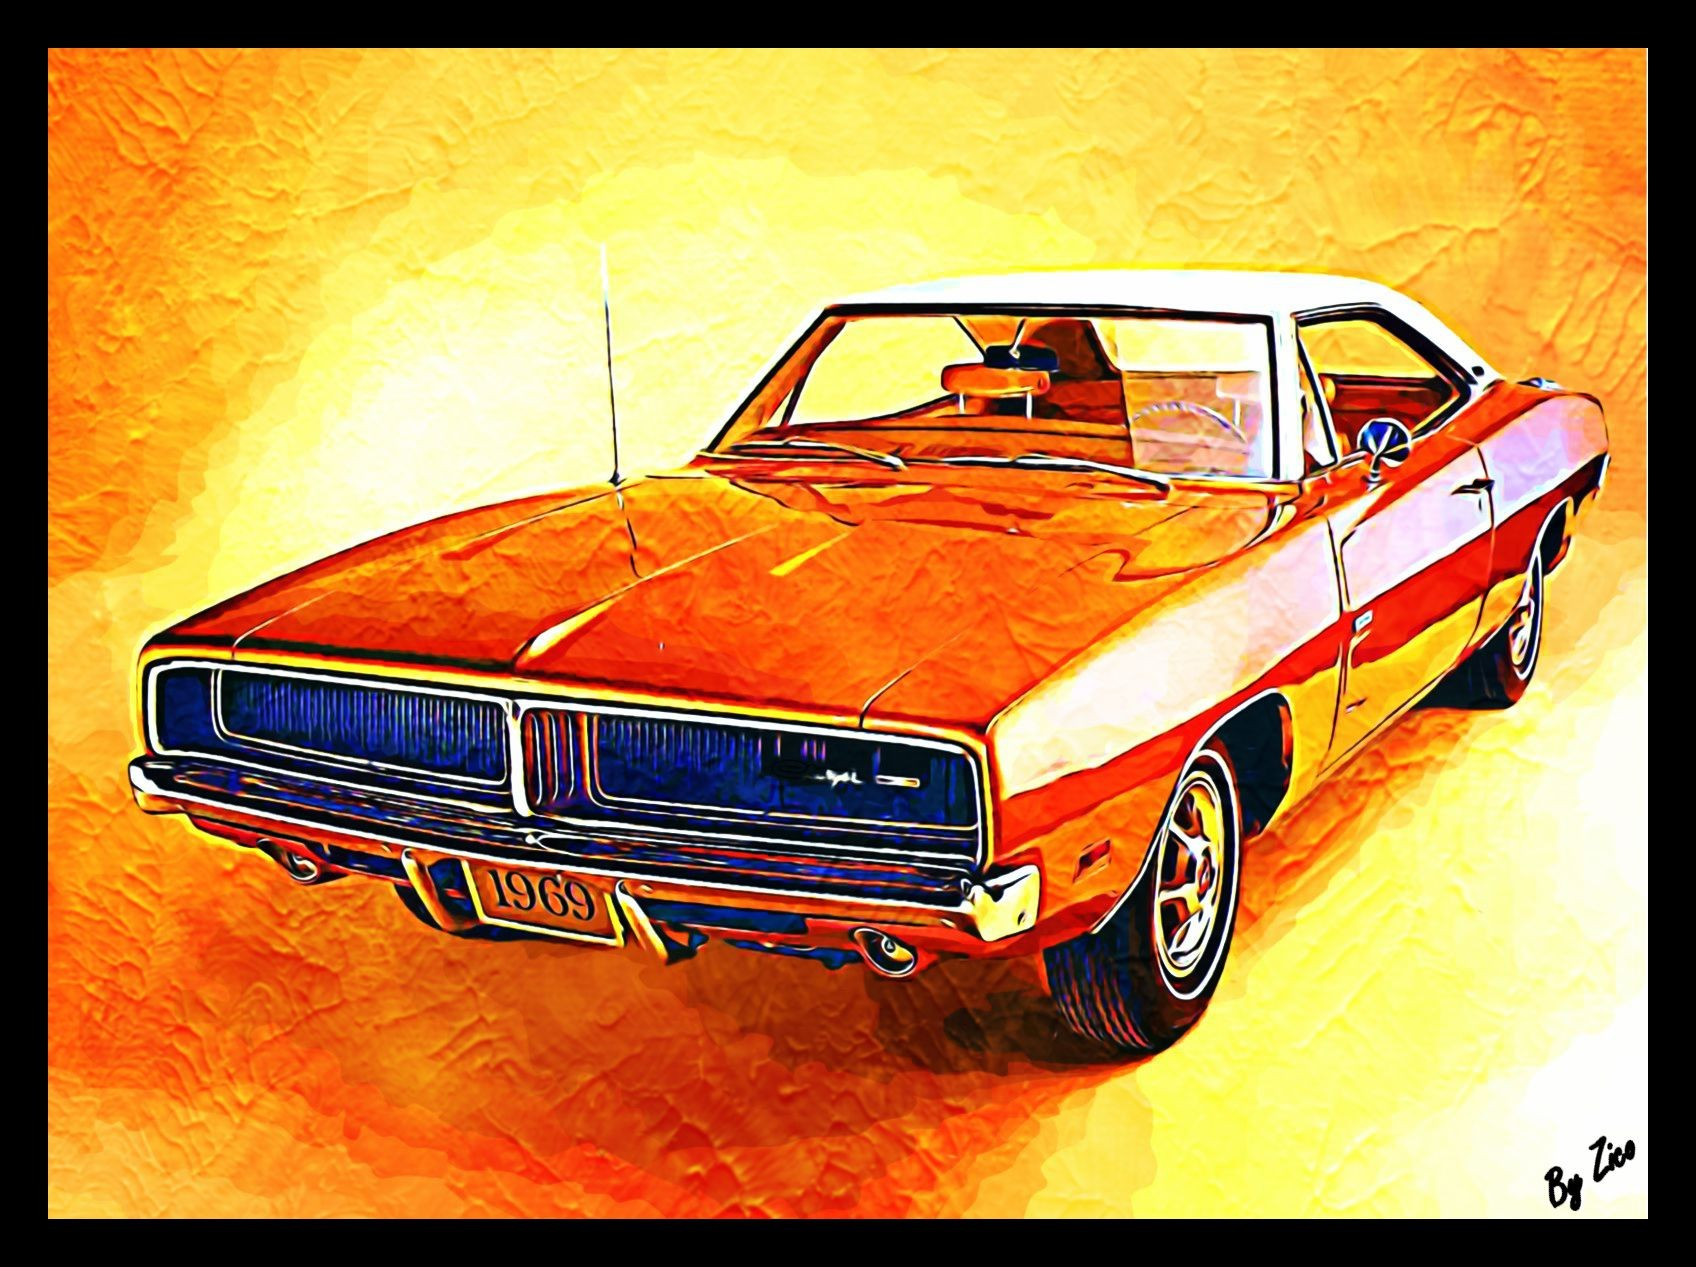 3840x1080 Wallpaper Classic Car Car Vintage Old Car Muscle Cars Dodge Charger